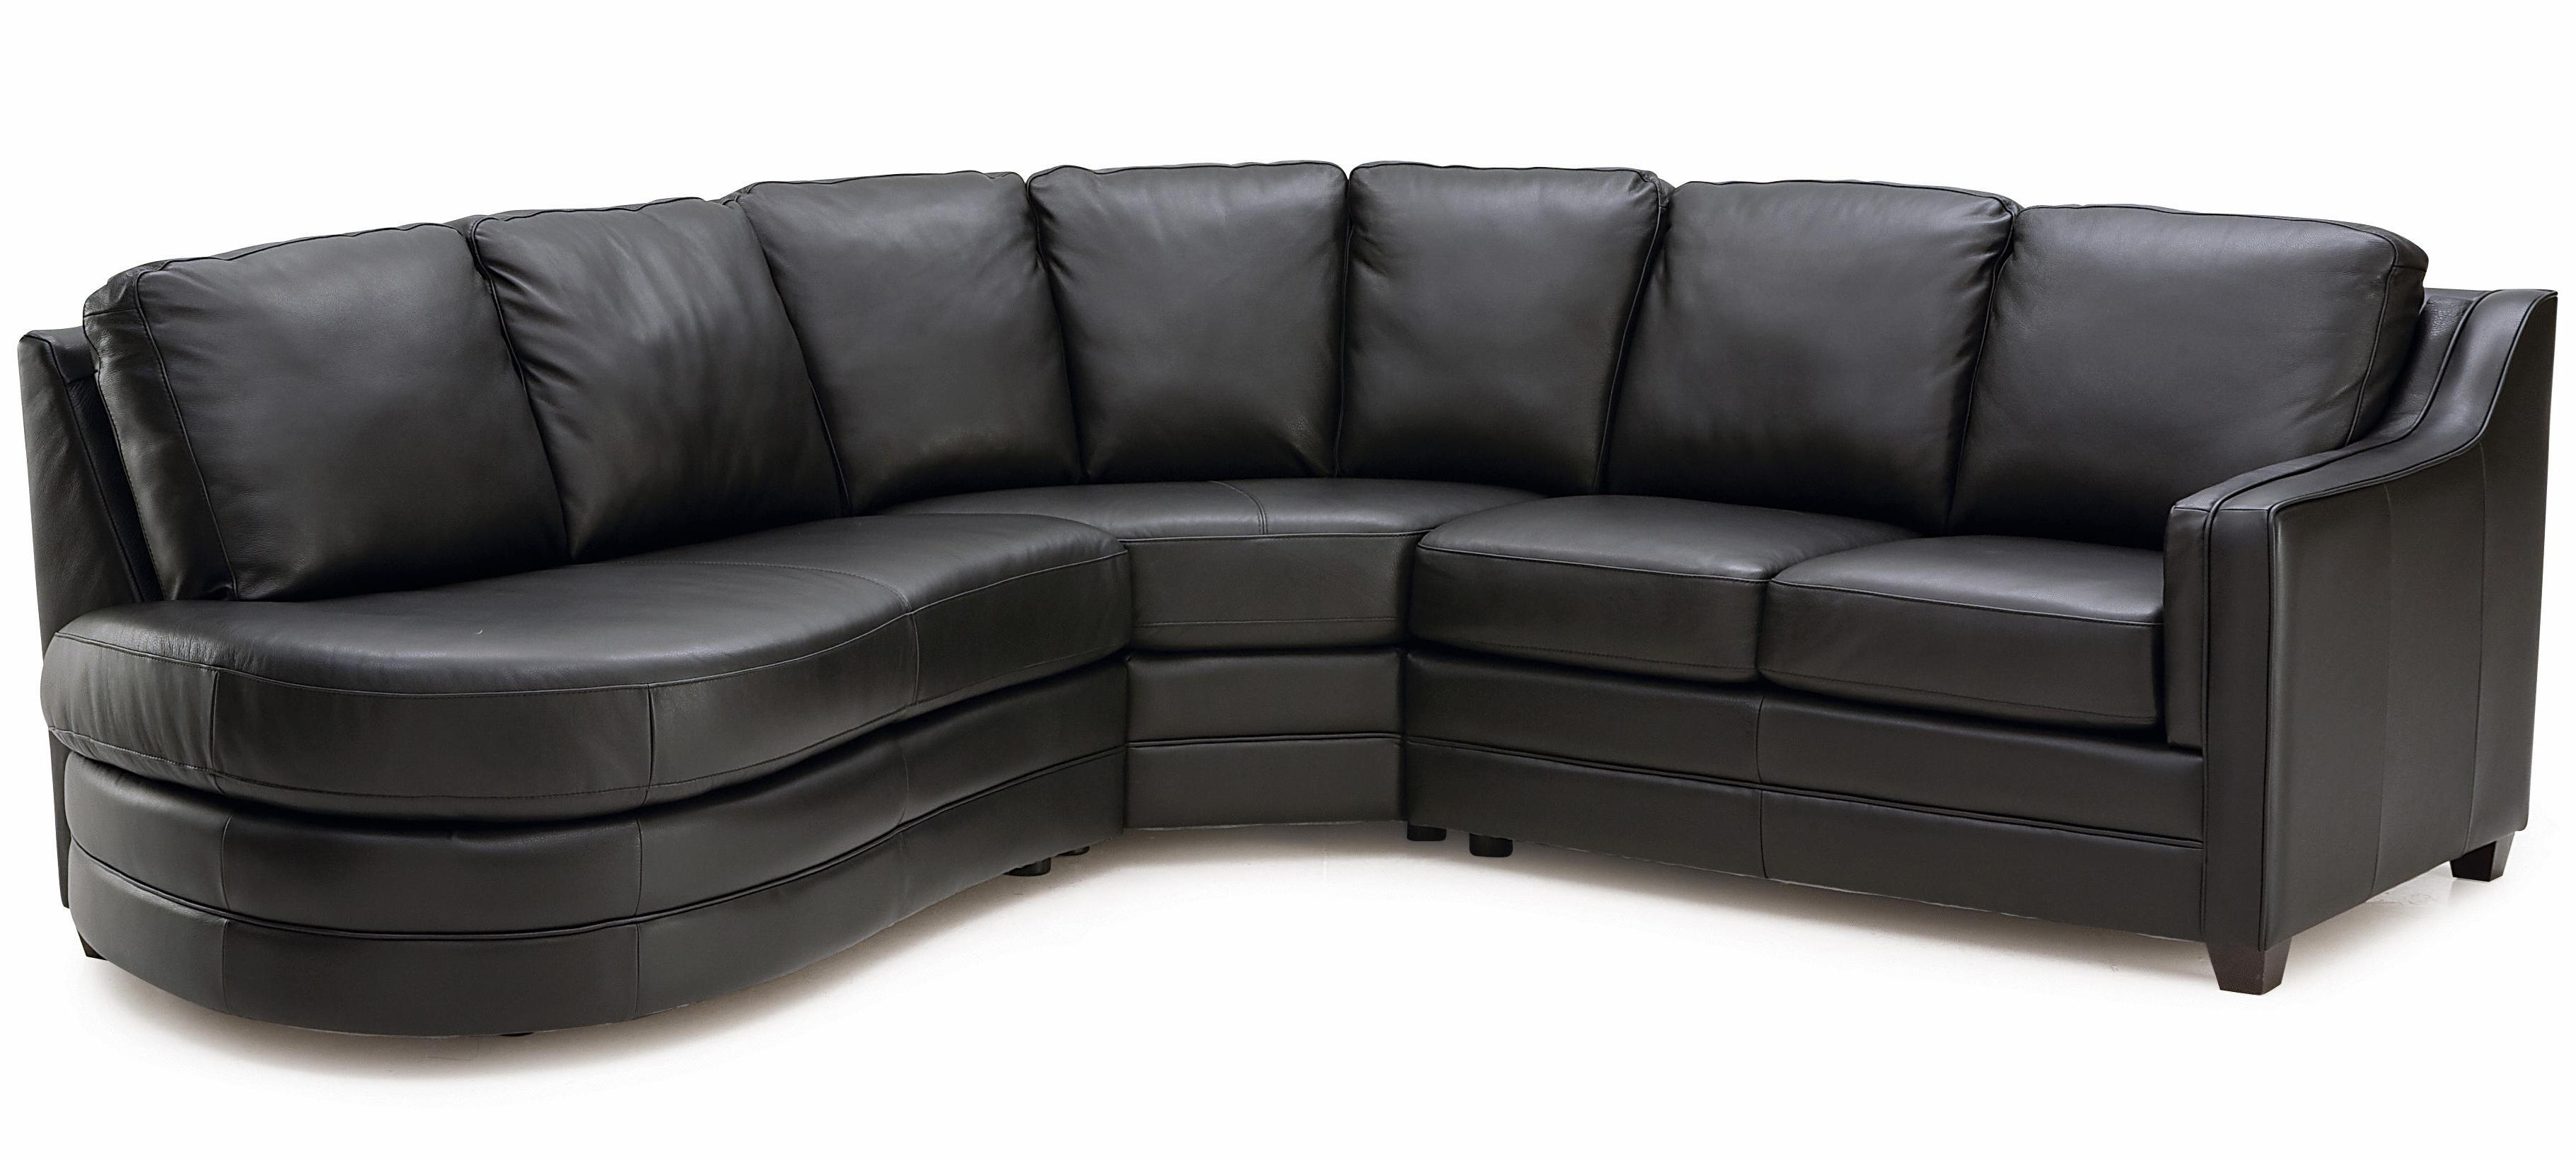 Palliser Corissa Contemporary Sectional Sofa – Ahfa – Sofa Intended For Fashionable Evansville In Sectional Sofas (View 15 of 15)